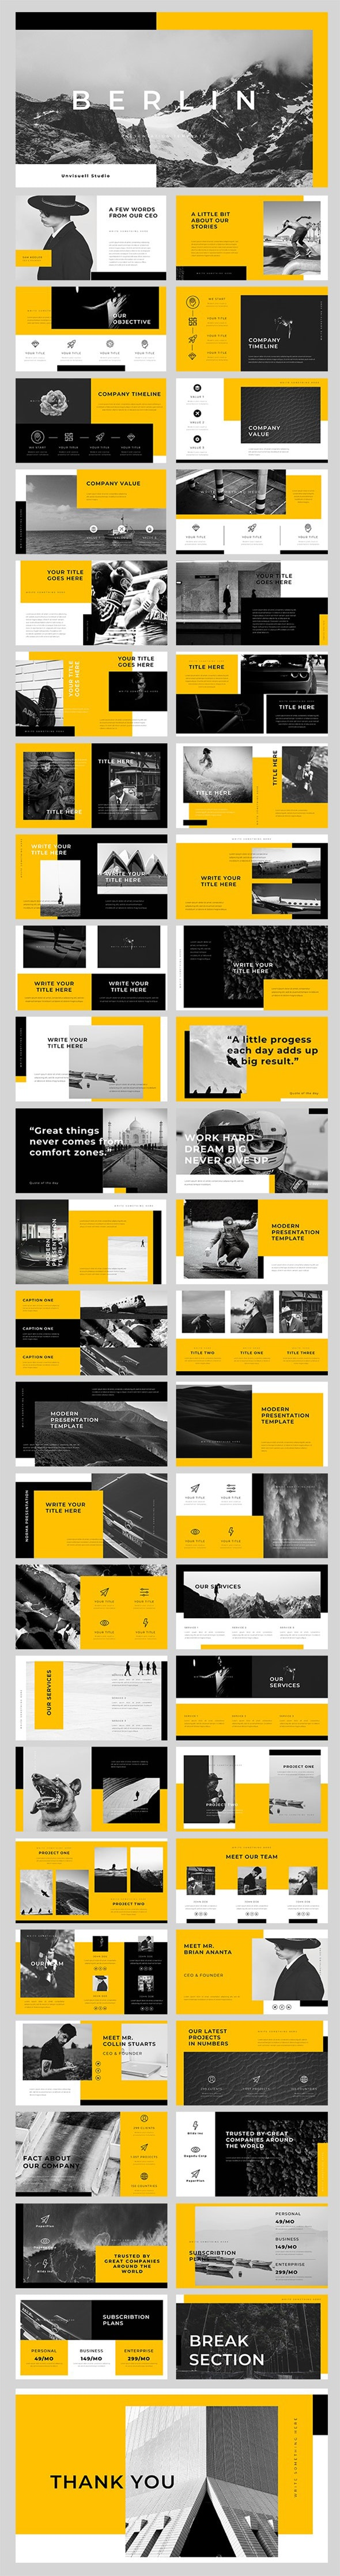 Berlin PowerPoint Template - PowerPoint Templates Presentation Templates